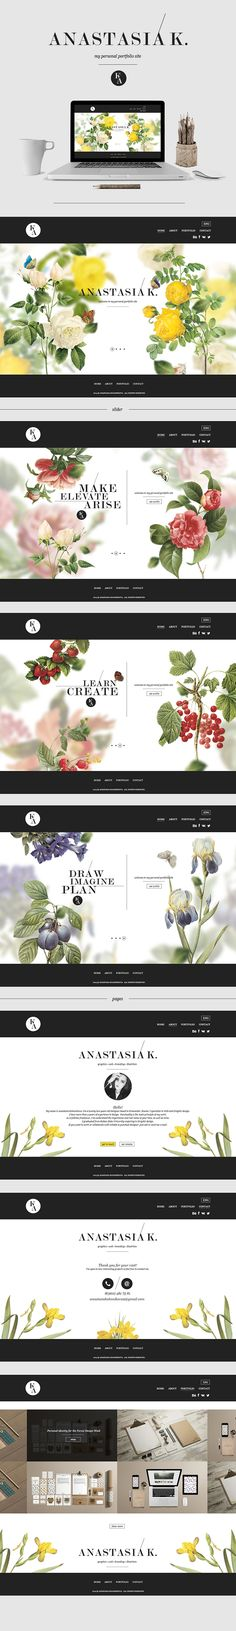 We Love The Look Of These Beautiful Illustrations In This Website Design Webdesign Design Illustrati 3 Layout Design, Web Layout, Ux Design, Branding Design, Blog Design, Email Design, Design Color, Design Ideas, Design Websites